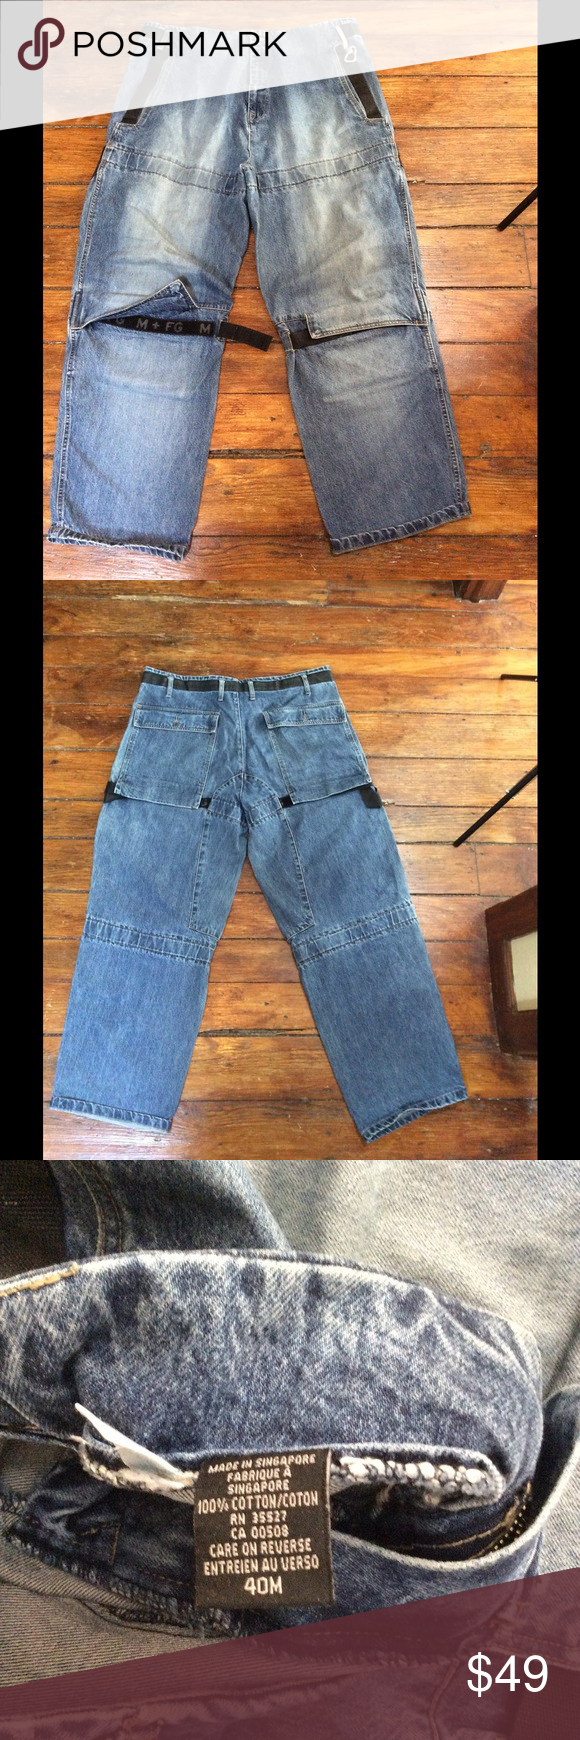 """MARITHE FRANCOIS GIRBAUD Street Velcro Jeans 40x31 About This Item:  Pre-owned designerMARITHE FRANCOIS GIRBAUD Baggy Street Raver 90's street style Jeans with Velcro detailing. Includes Silver Key Hook. Great pair of jeans!  The Measurements:  Waist: 40"""" Inseam: 31"""" Legopening(ankle): 10"""" Marithe Francois Girbaud Jeans"""